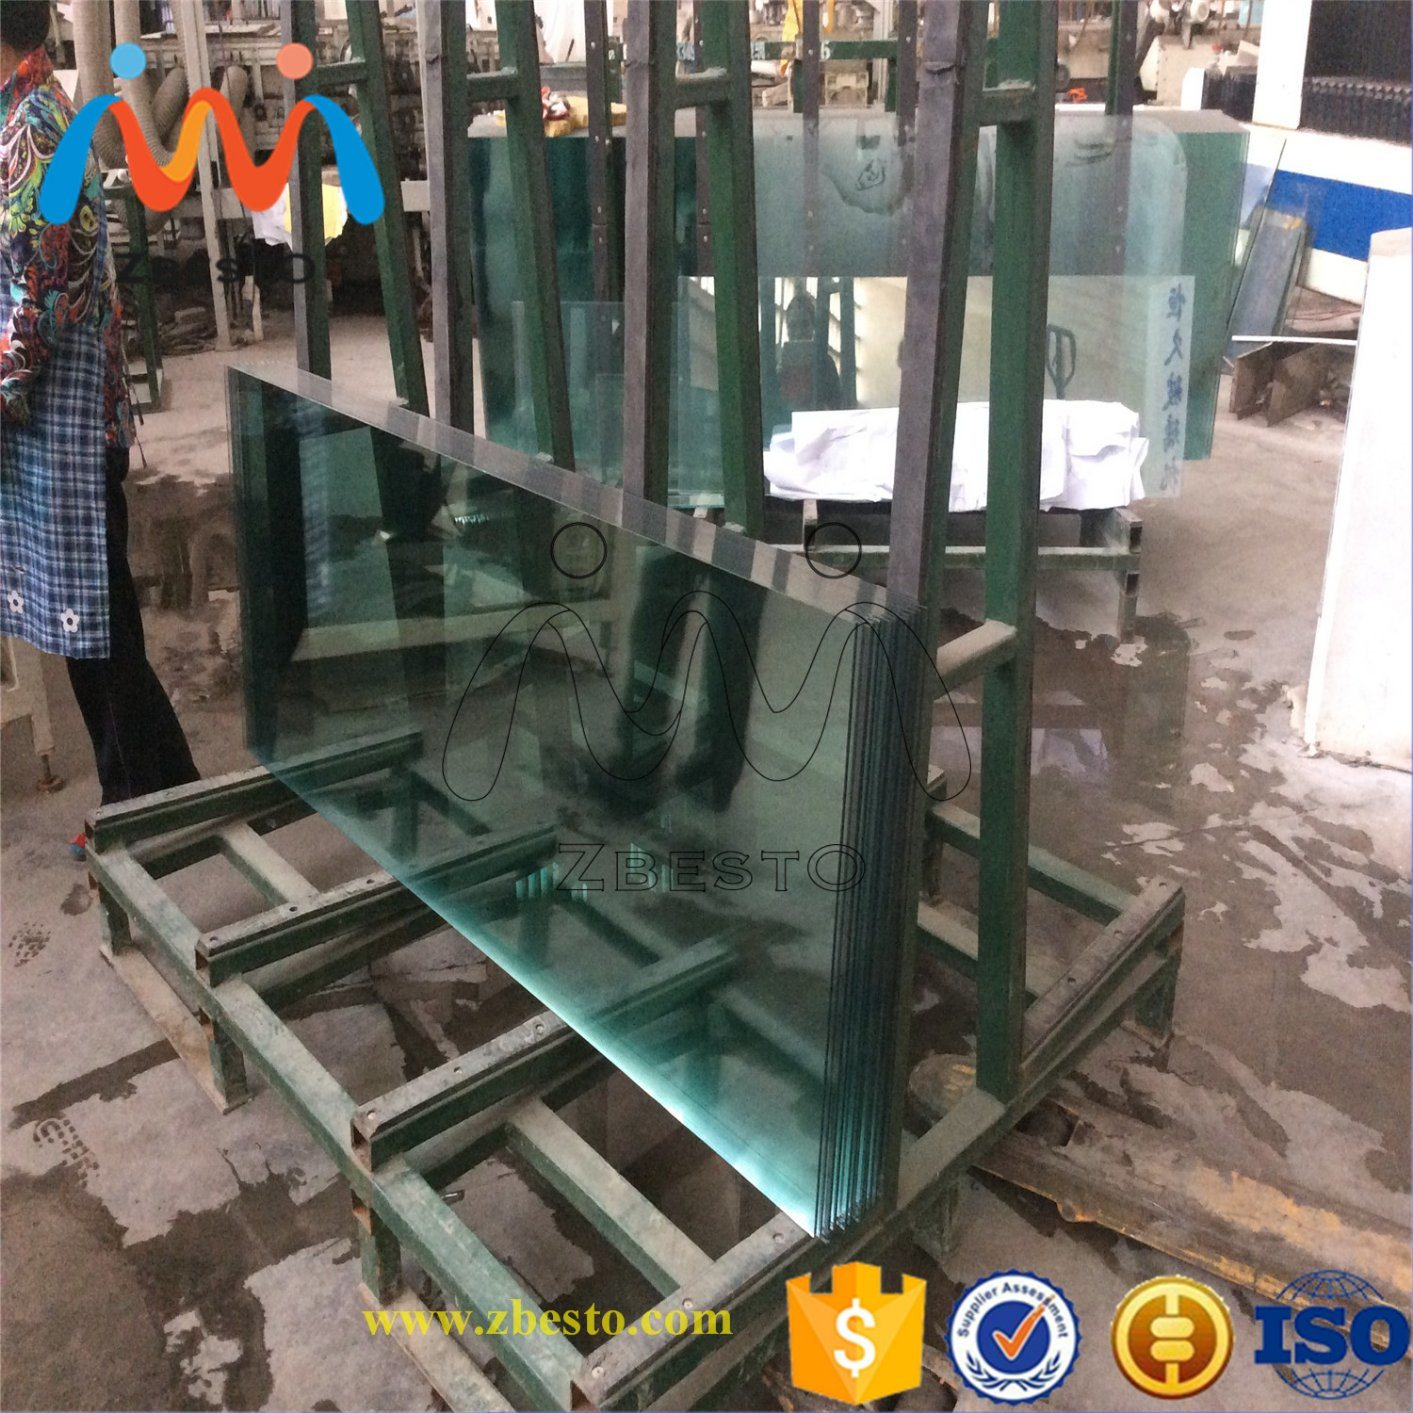 Custom Made Tempered Glass Table Top/Cut to Size